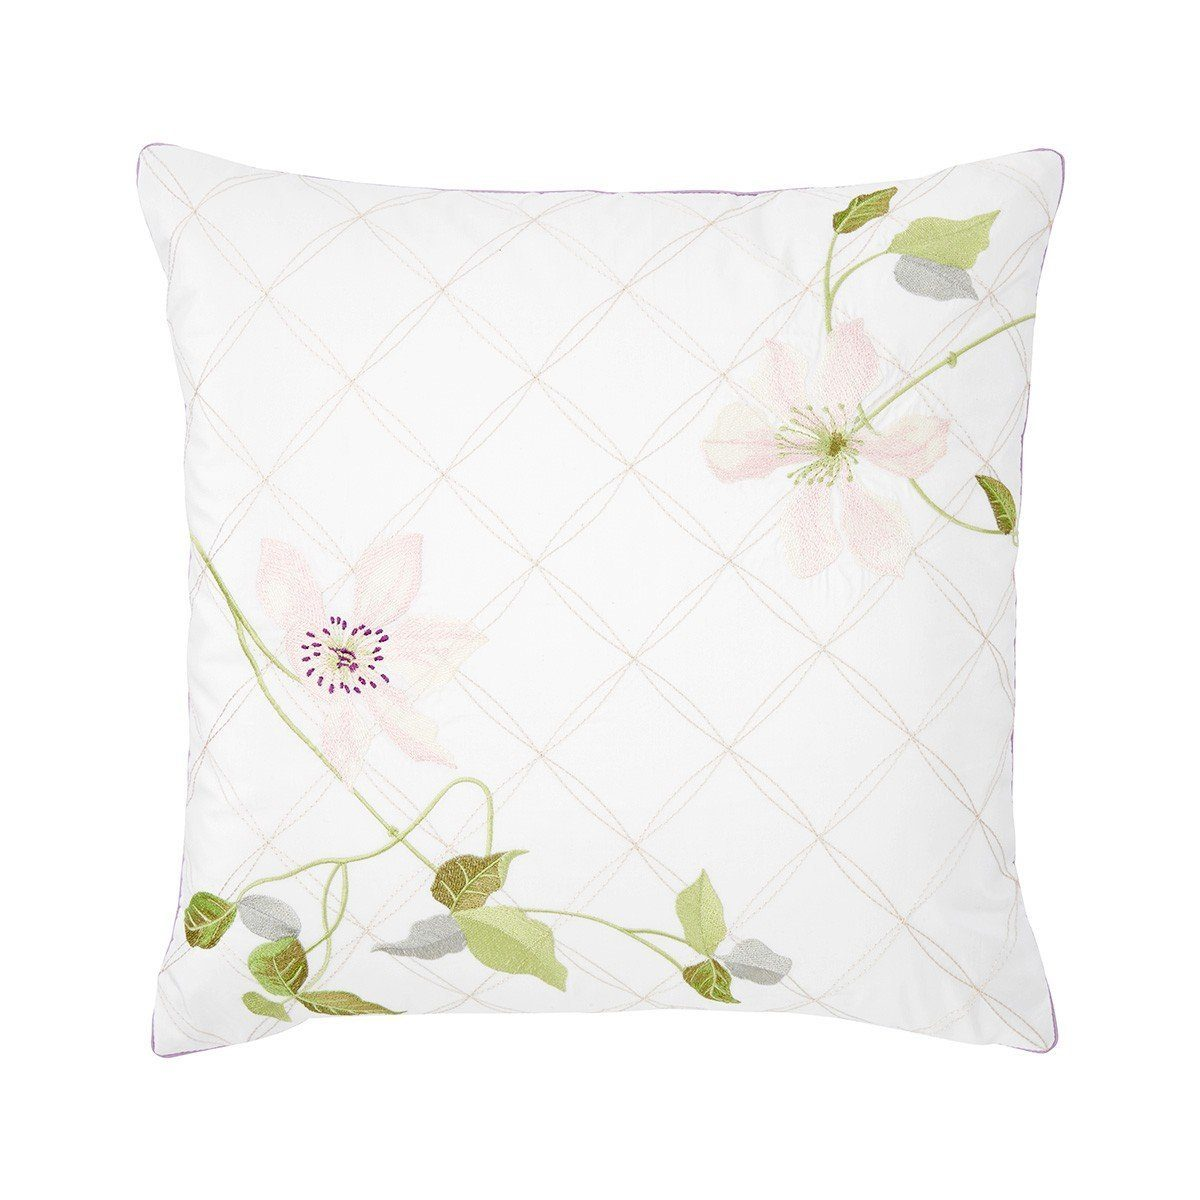 Clematis Decorative Pillow by Yves Delorme - Fig Linens and Home